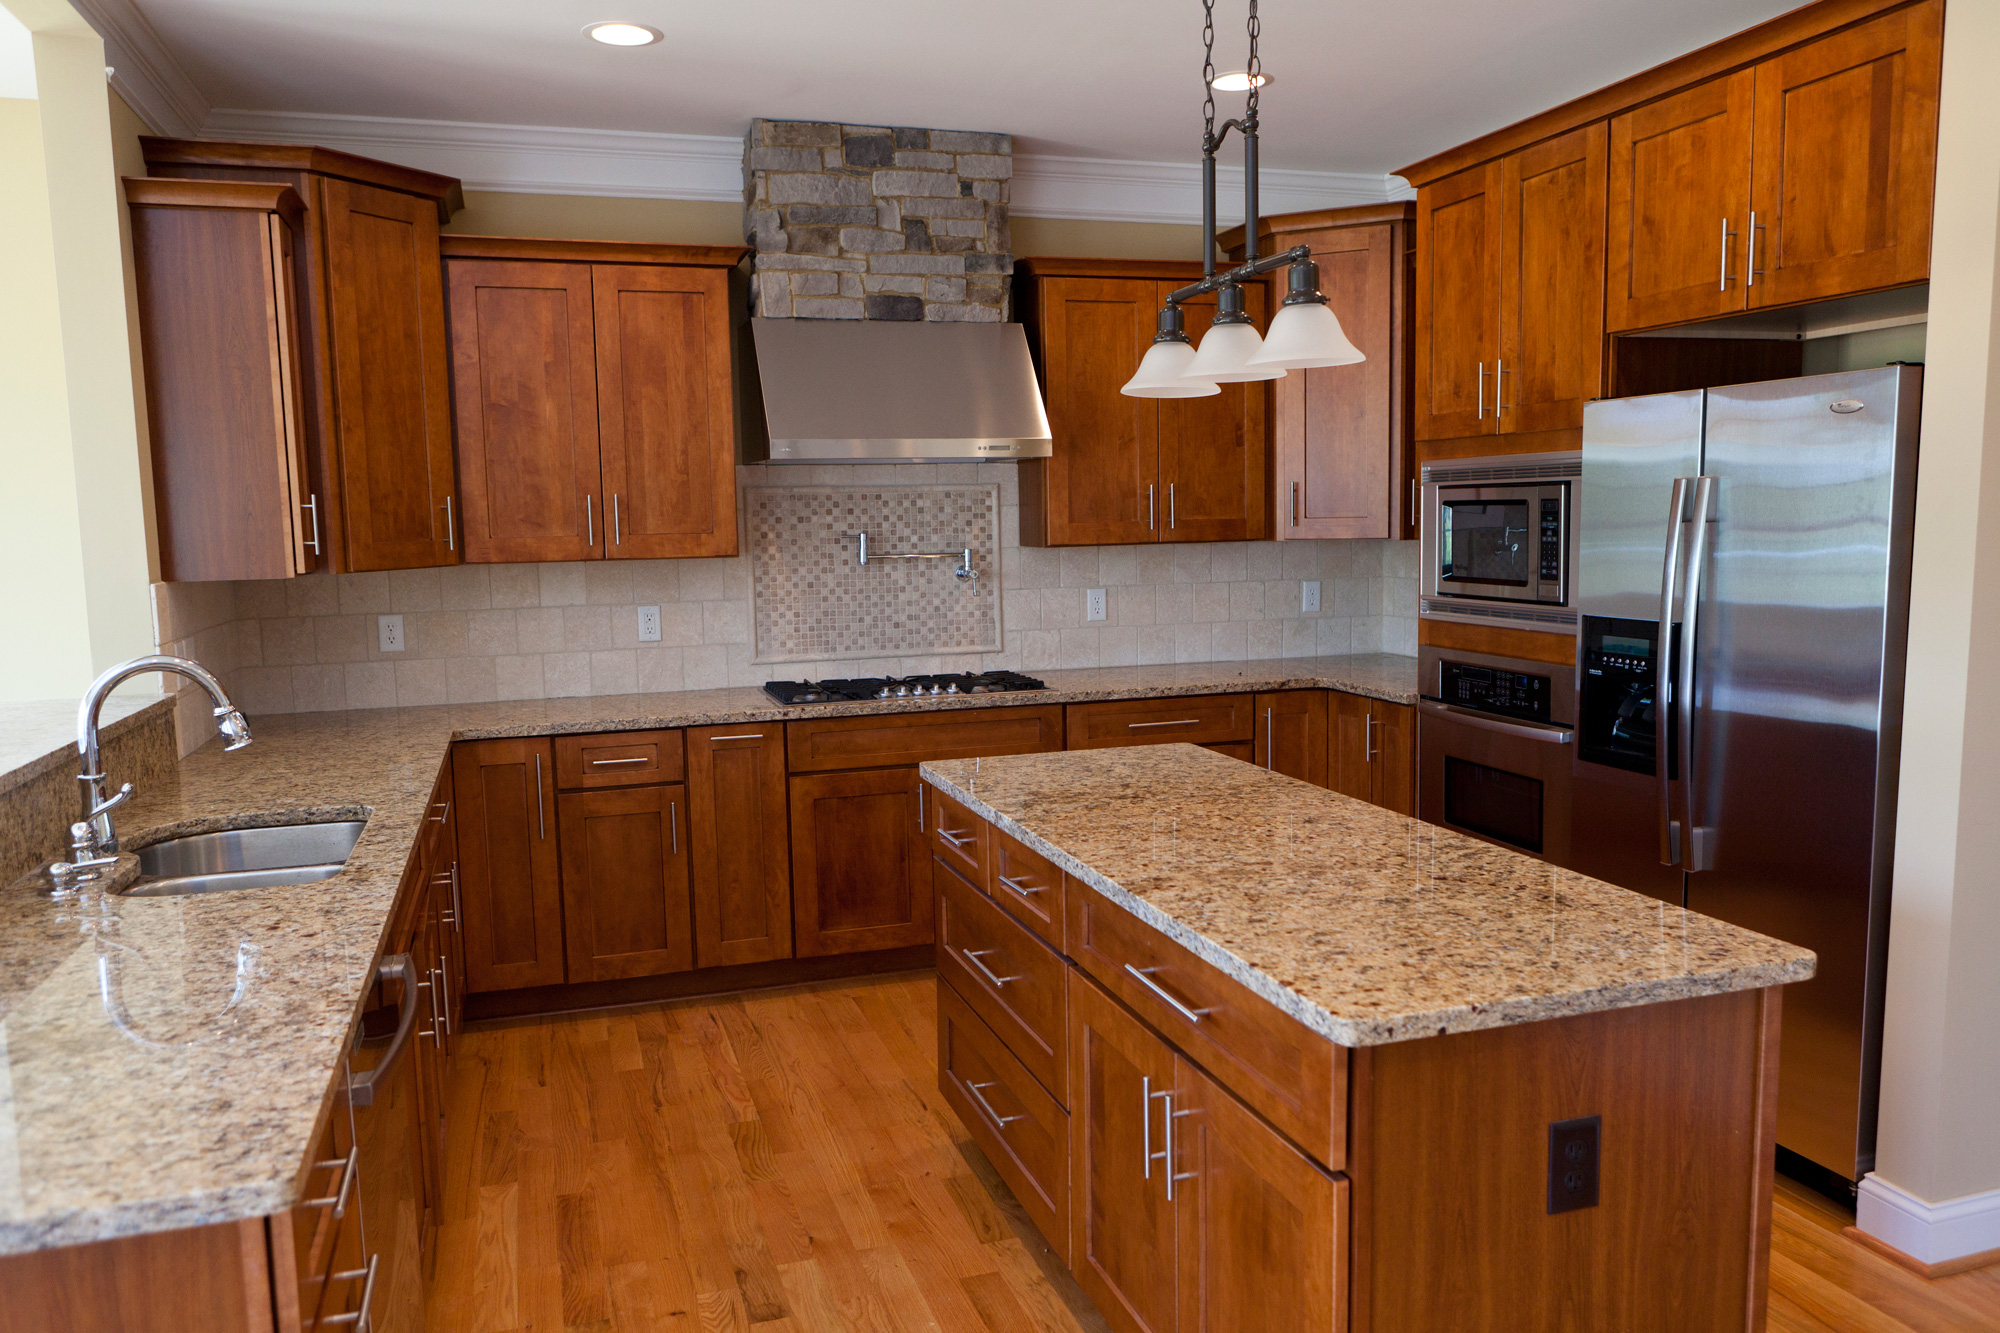 East palo alto contractor and home remodel company for Kitchen remodel pictures